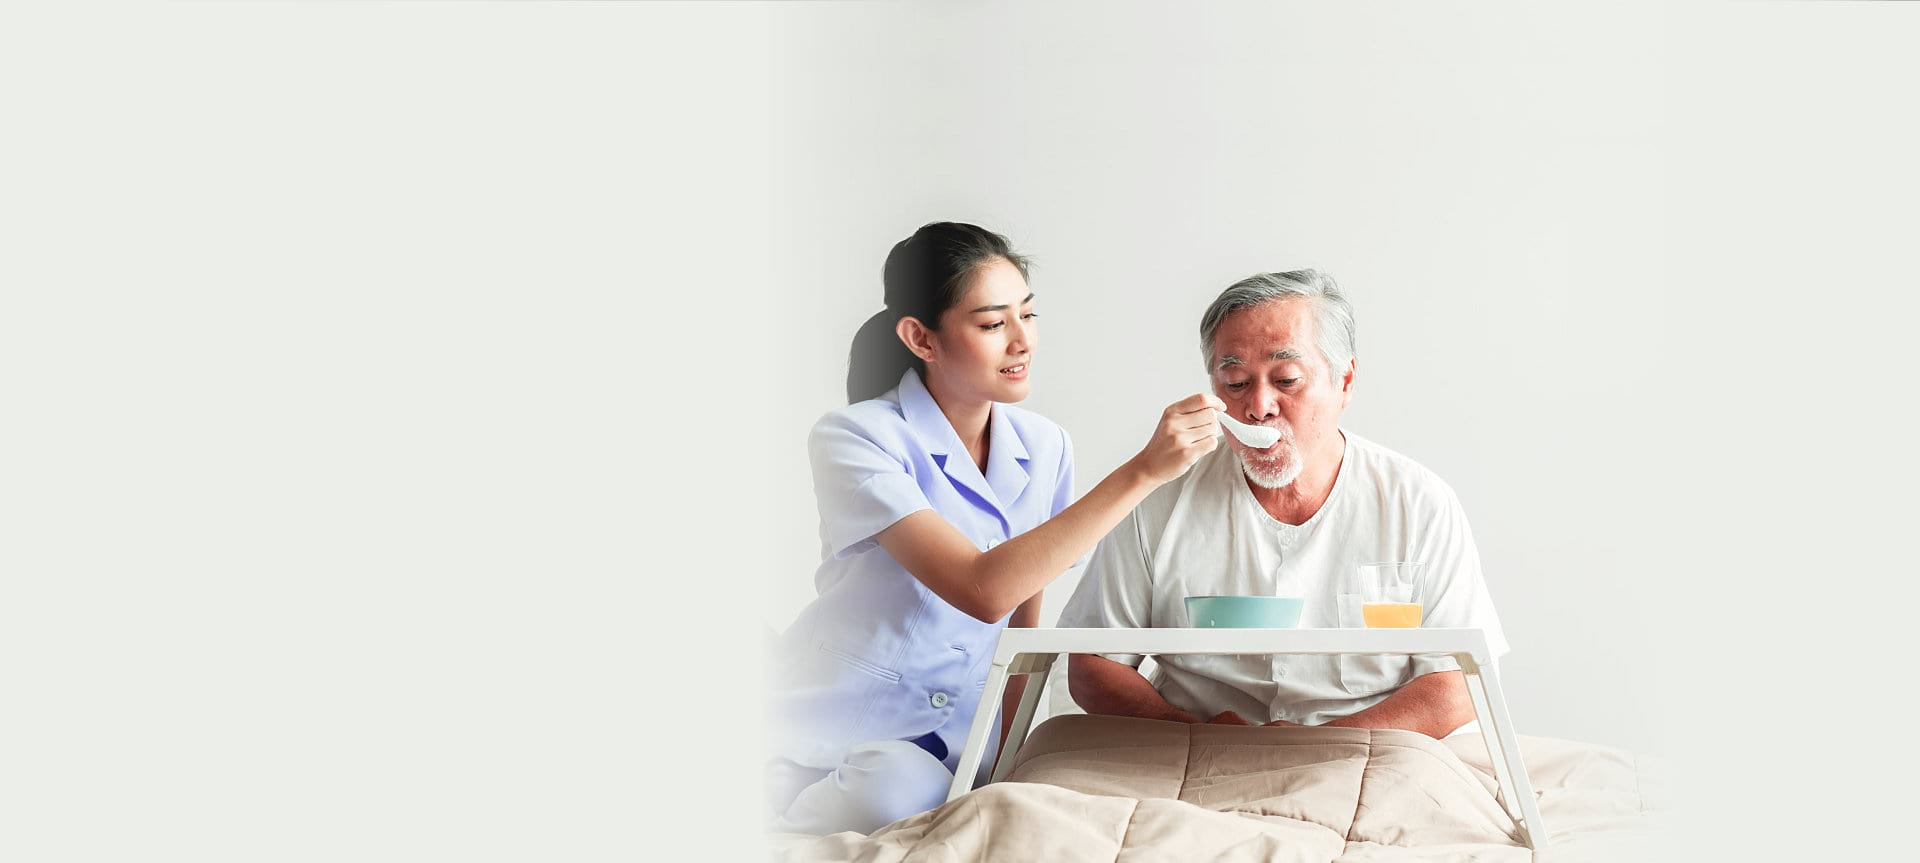 caregiver helping patient to eat